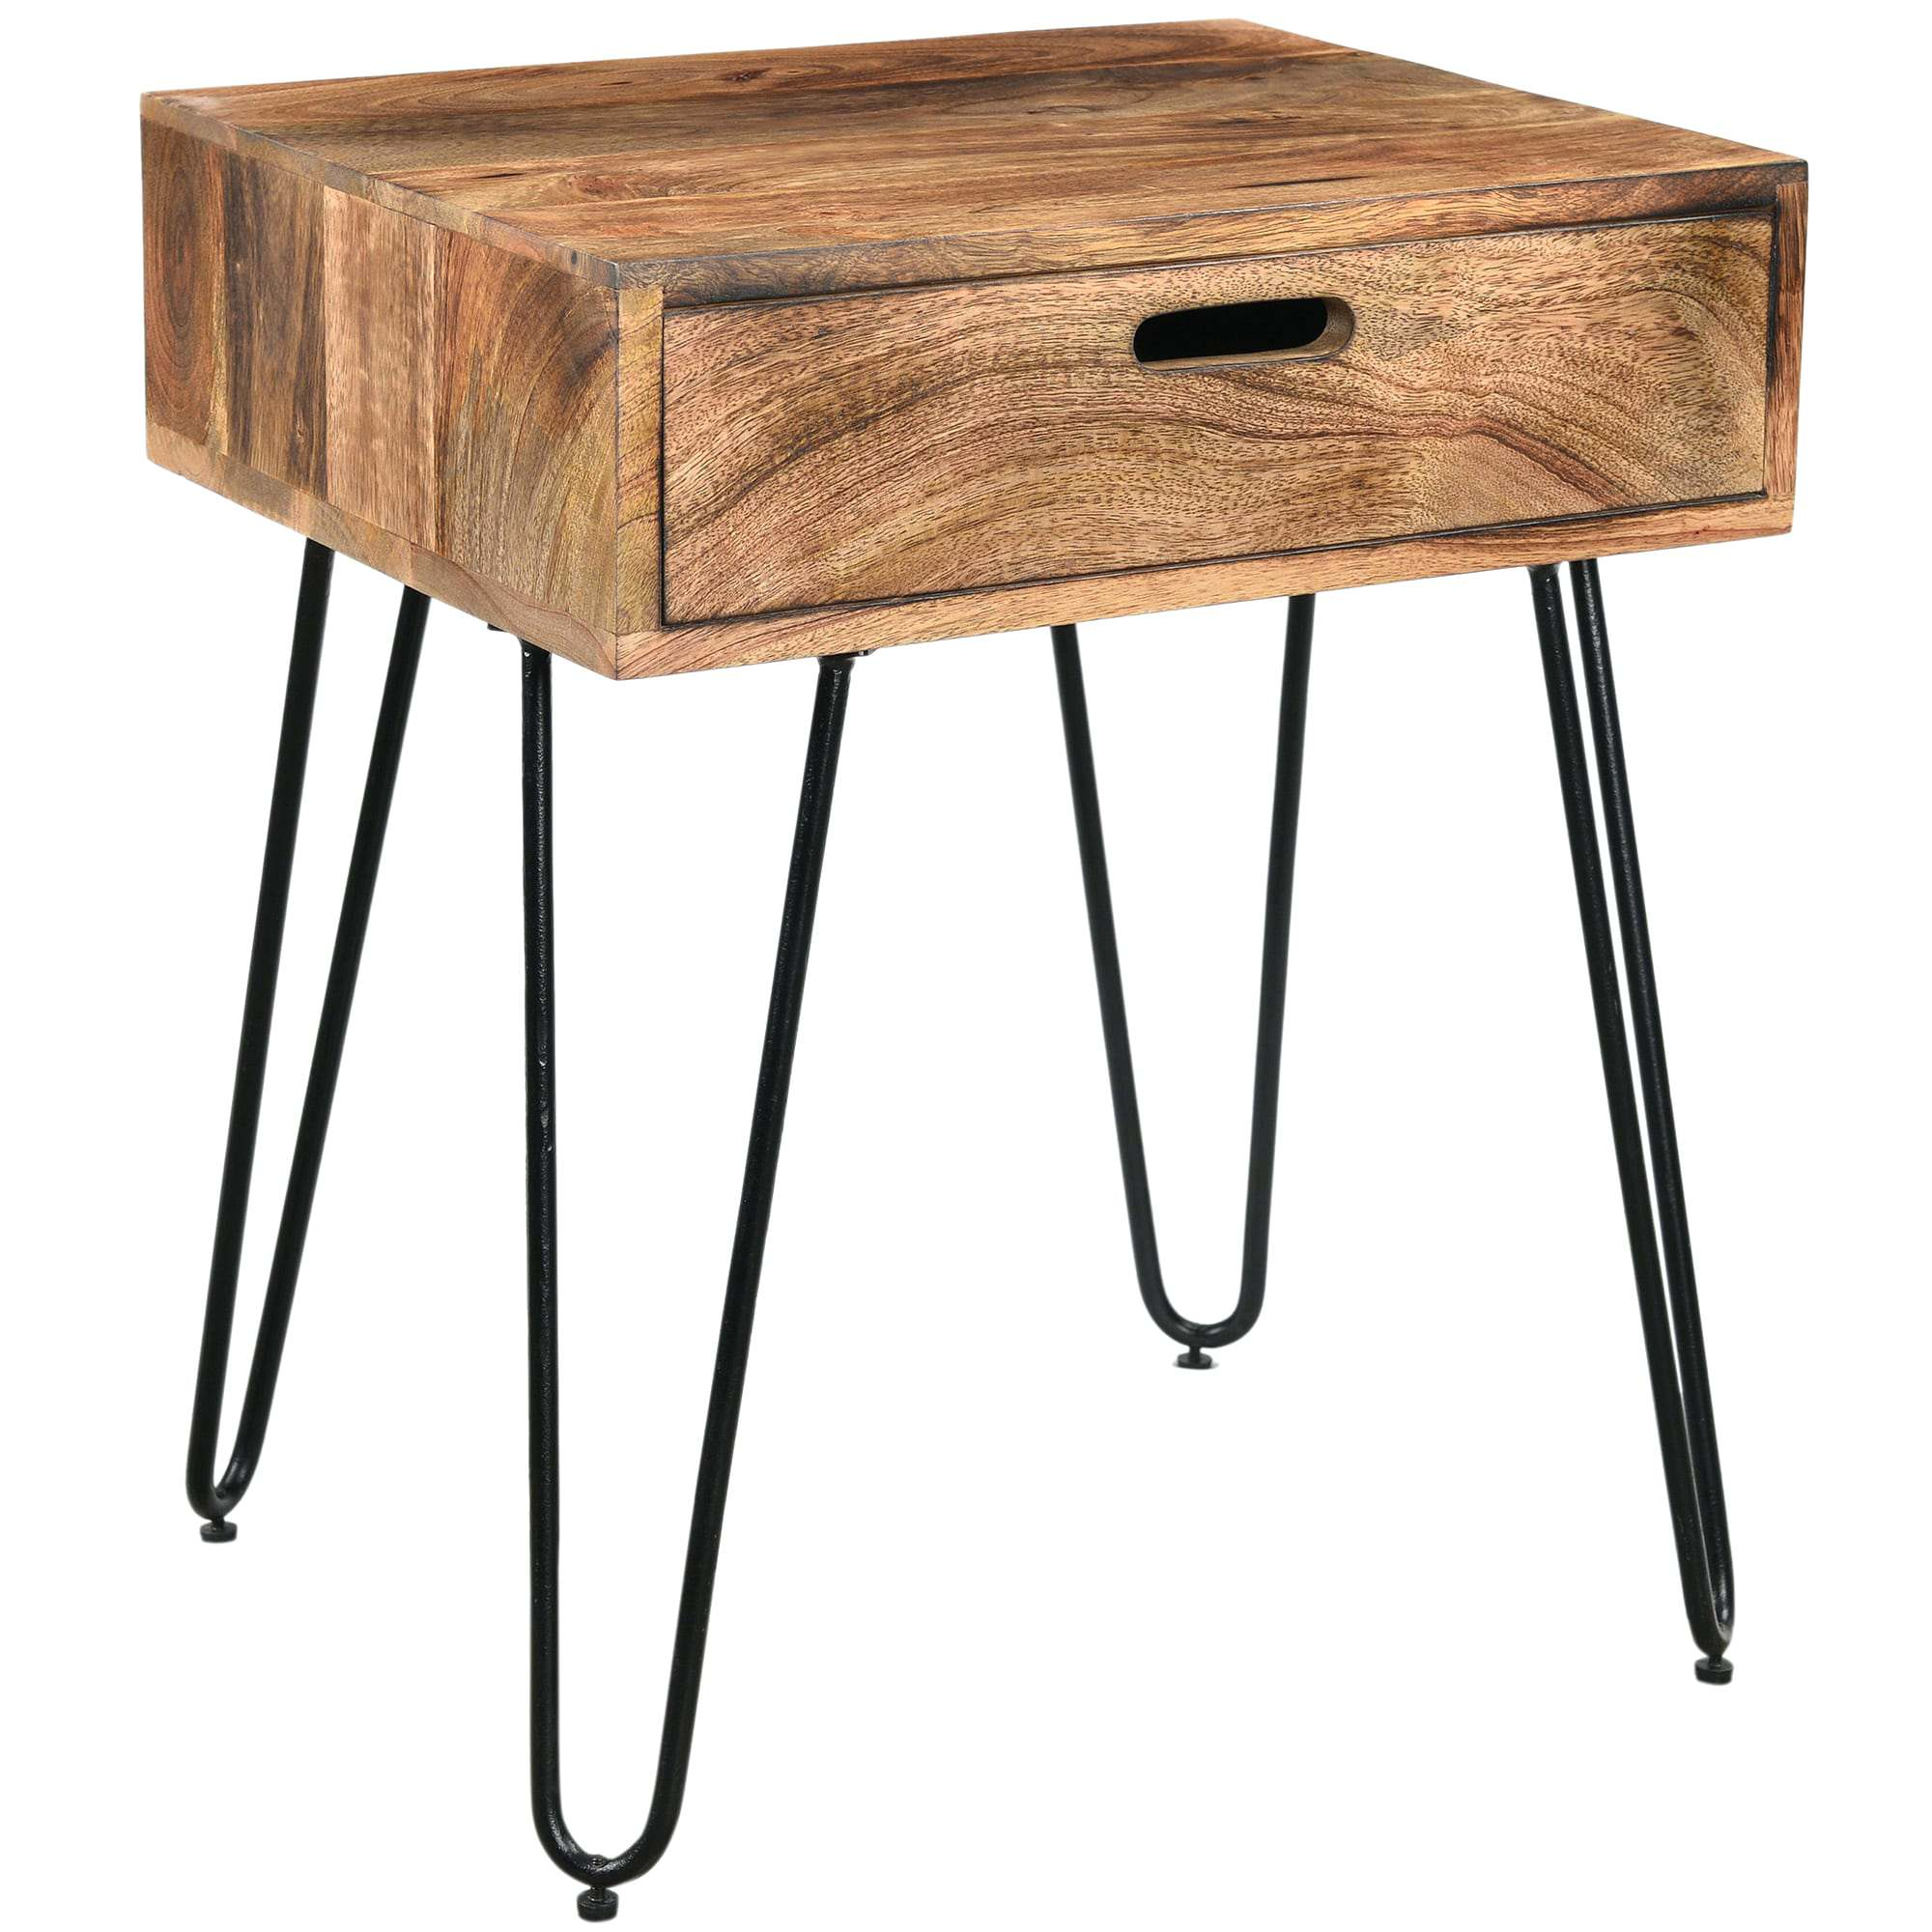 natural wood end table slab side branch rustic burnt solid mango black iron accent battery operated house lamps pier one outdoor umbrellas jcpenney curtains inch runner center